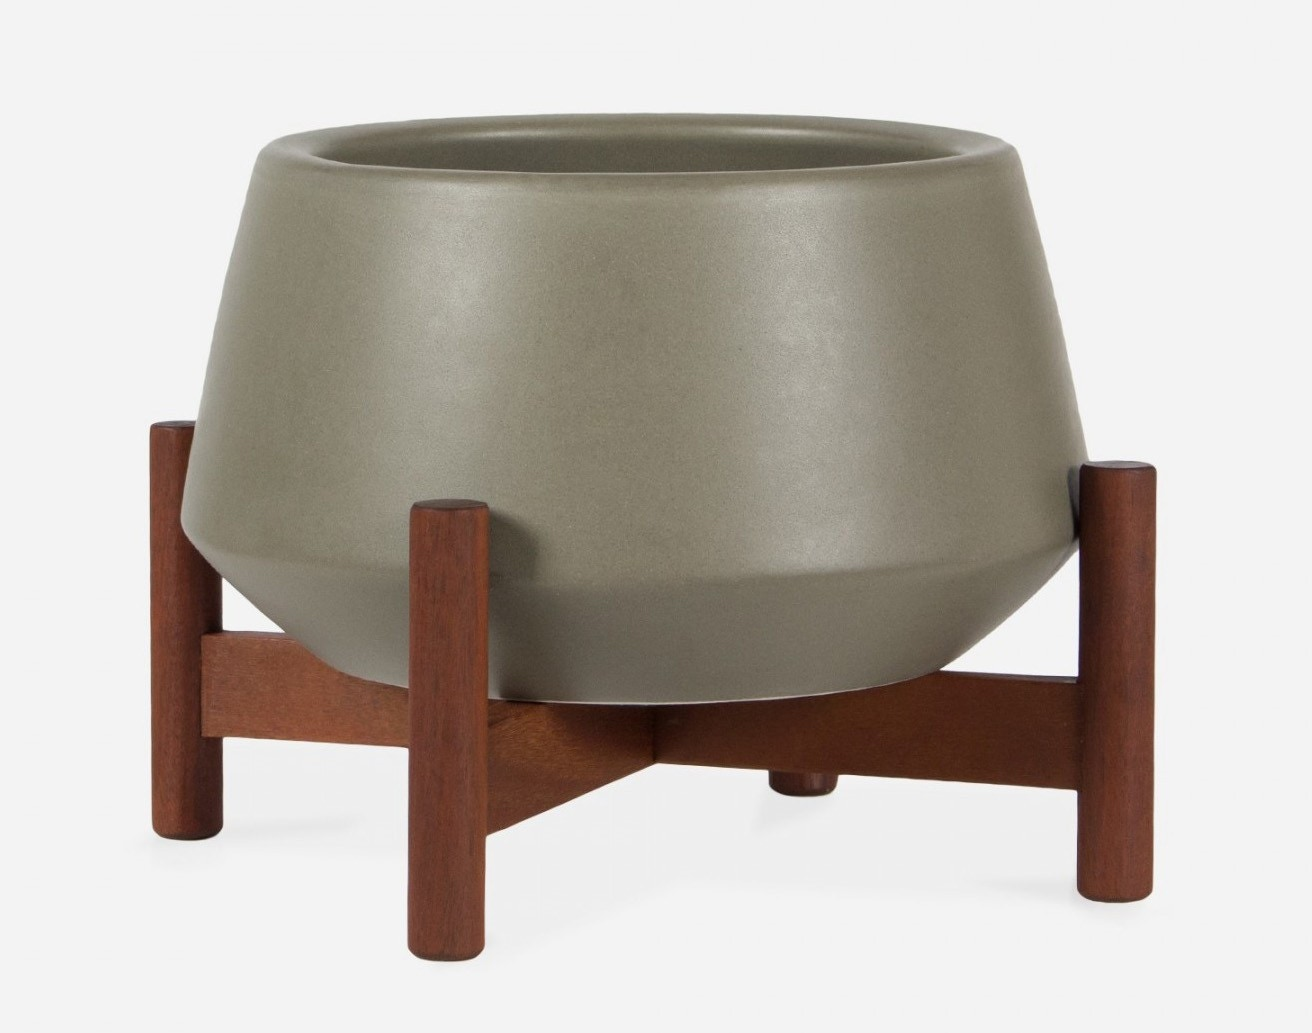 Modernica Case Study® Ceramics Table Top Diamond With Wood Stand (Planter)